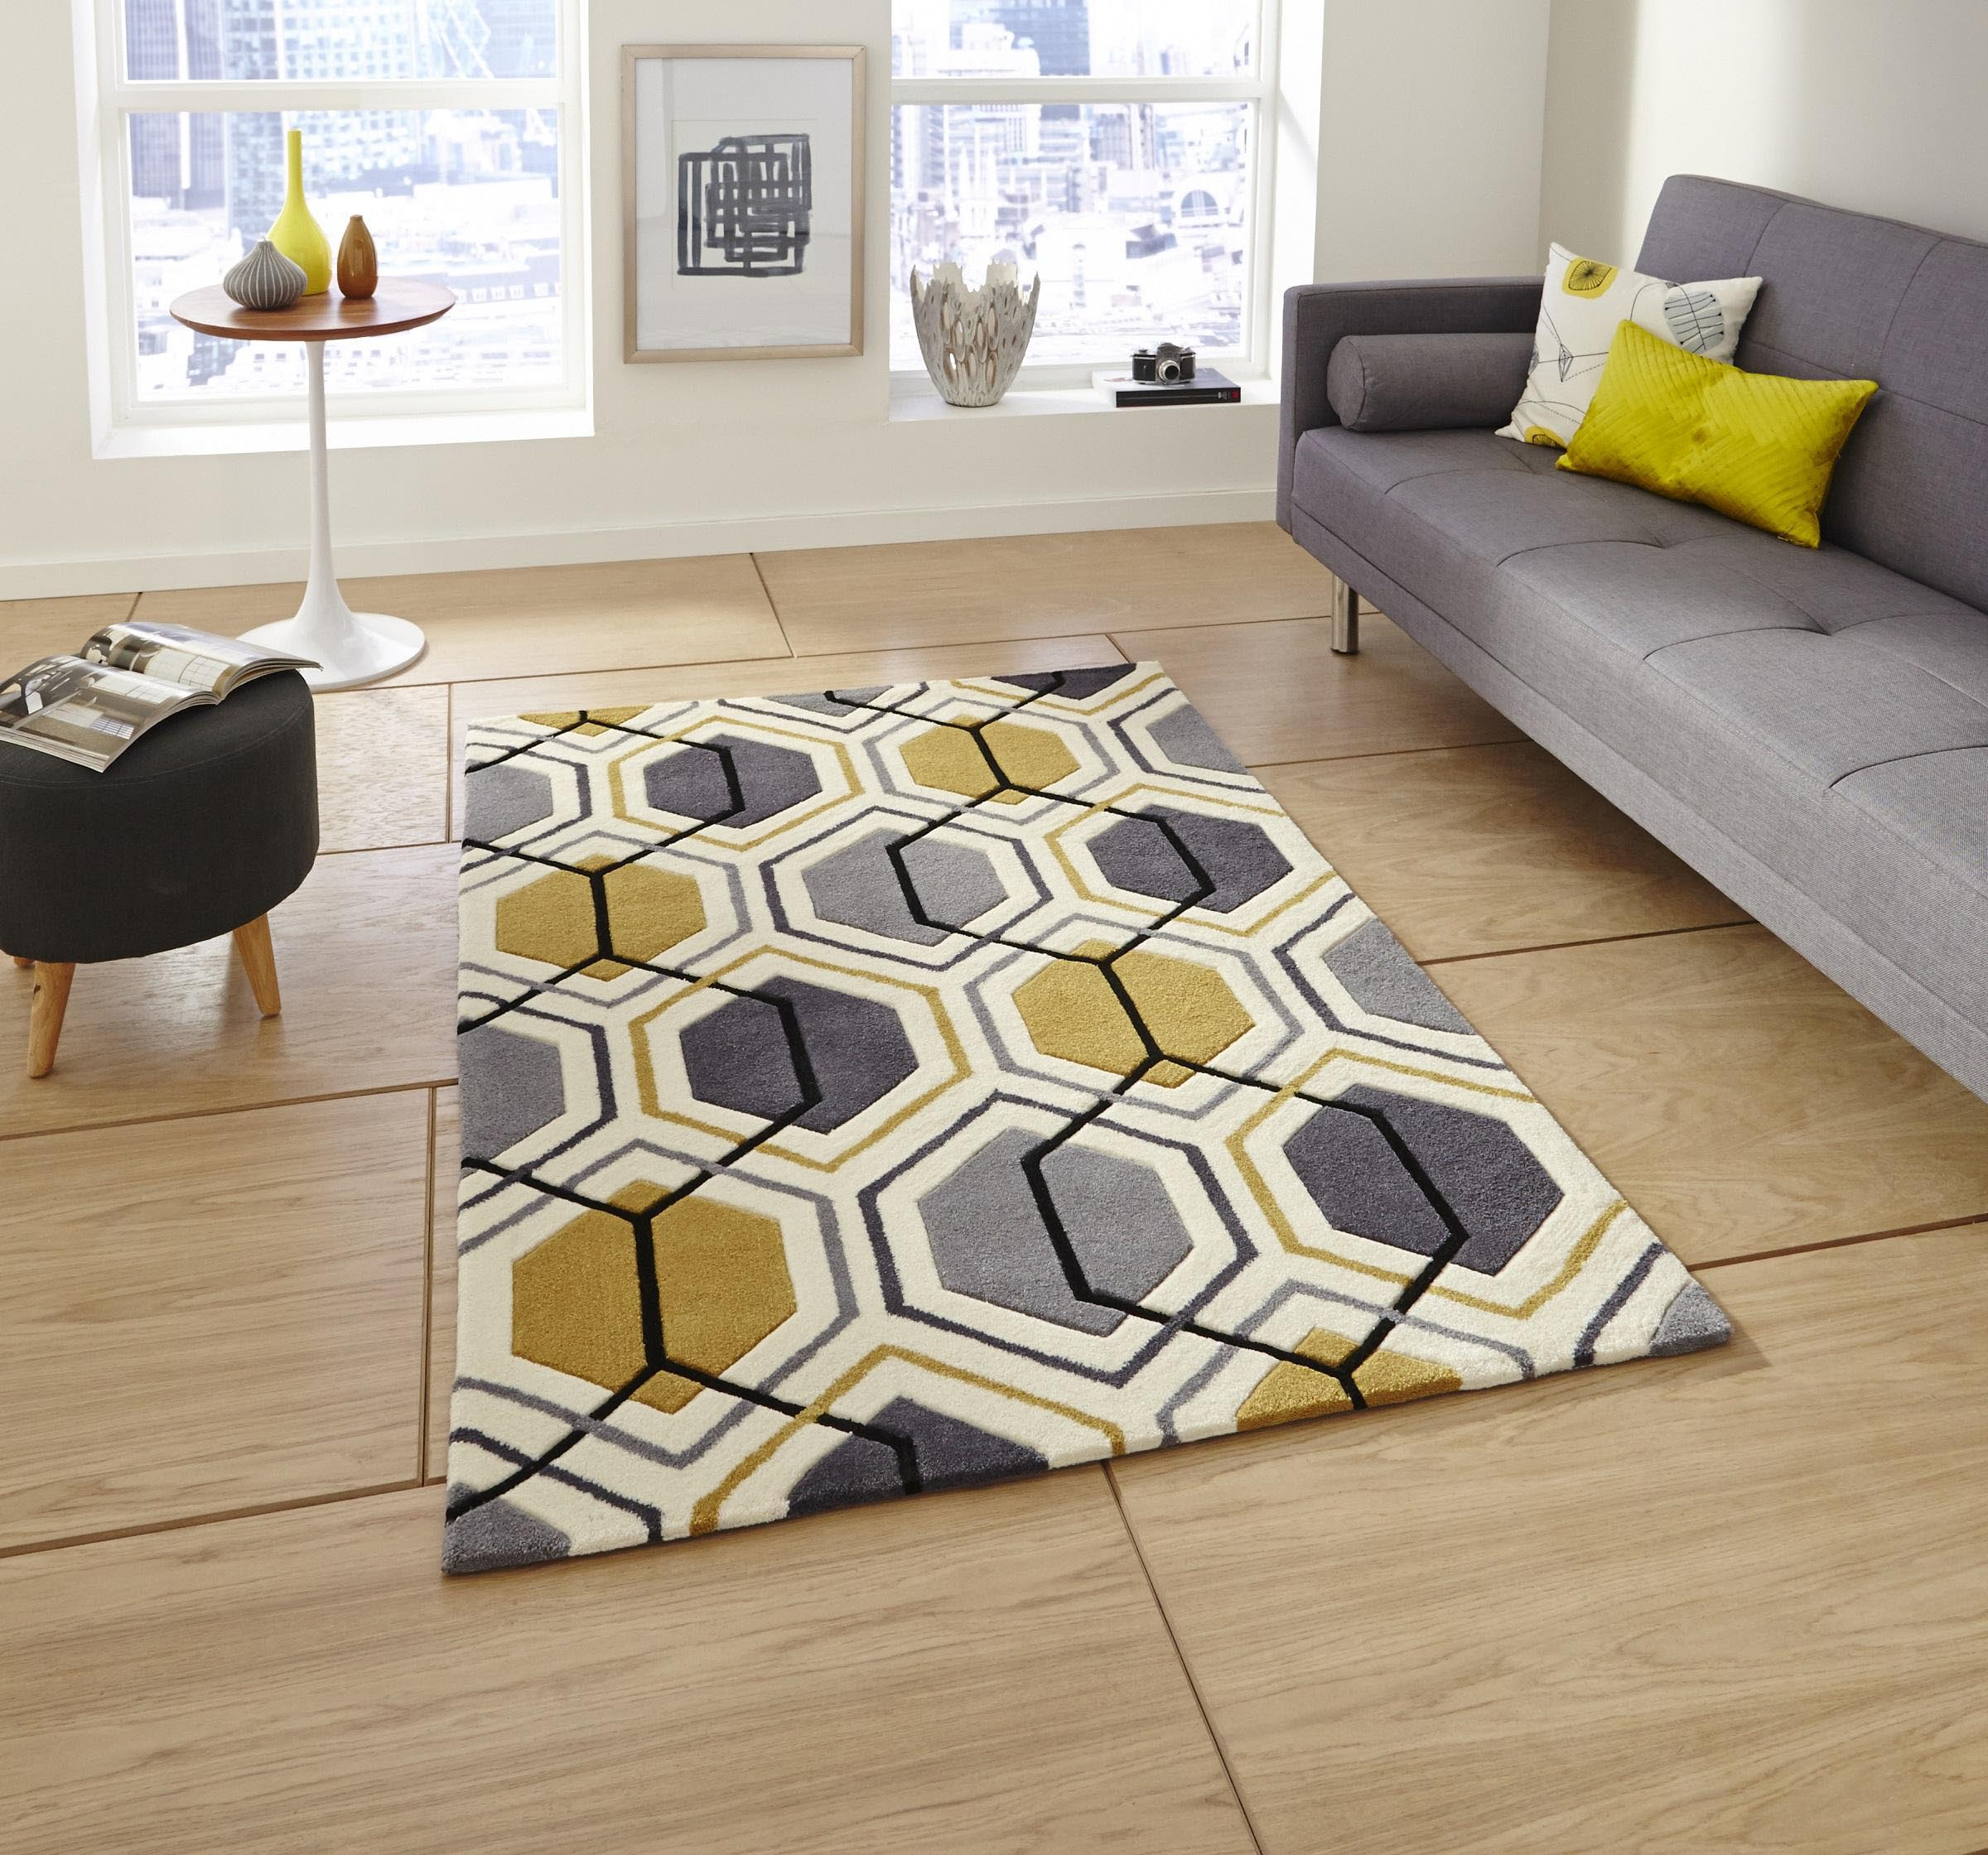 Grey and yellow rug best decor things for Small rugs for kitchen